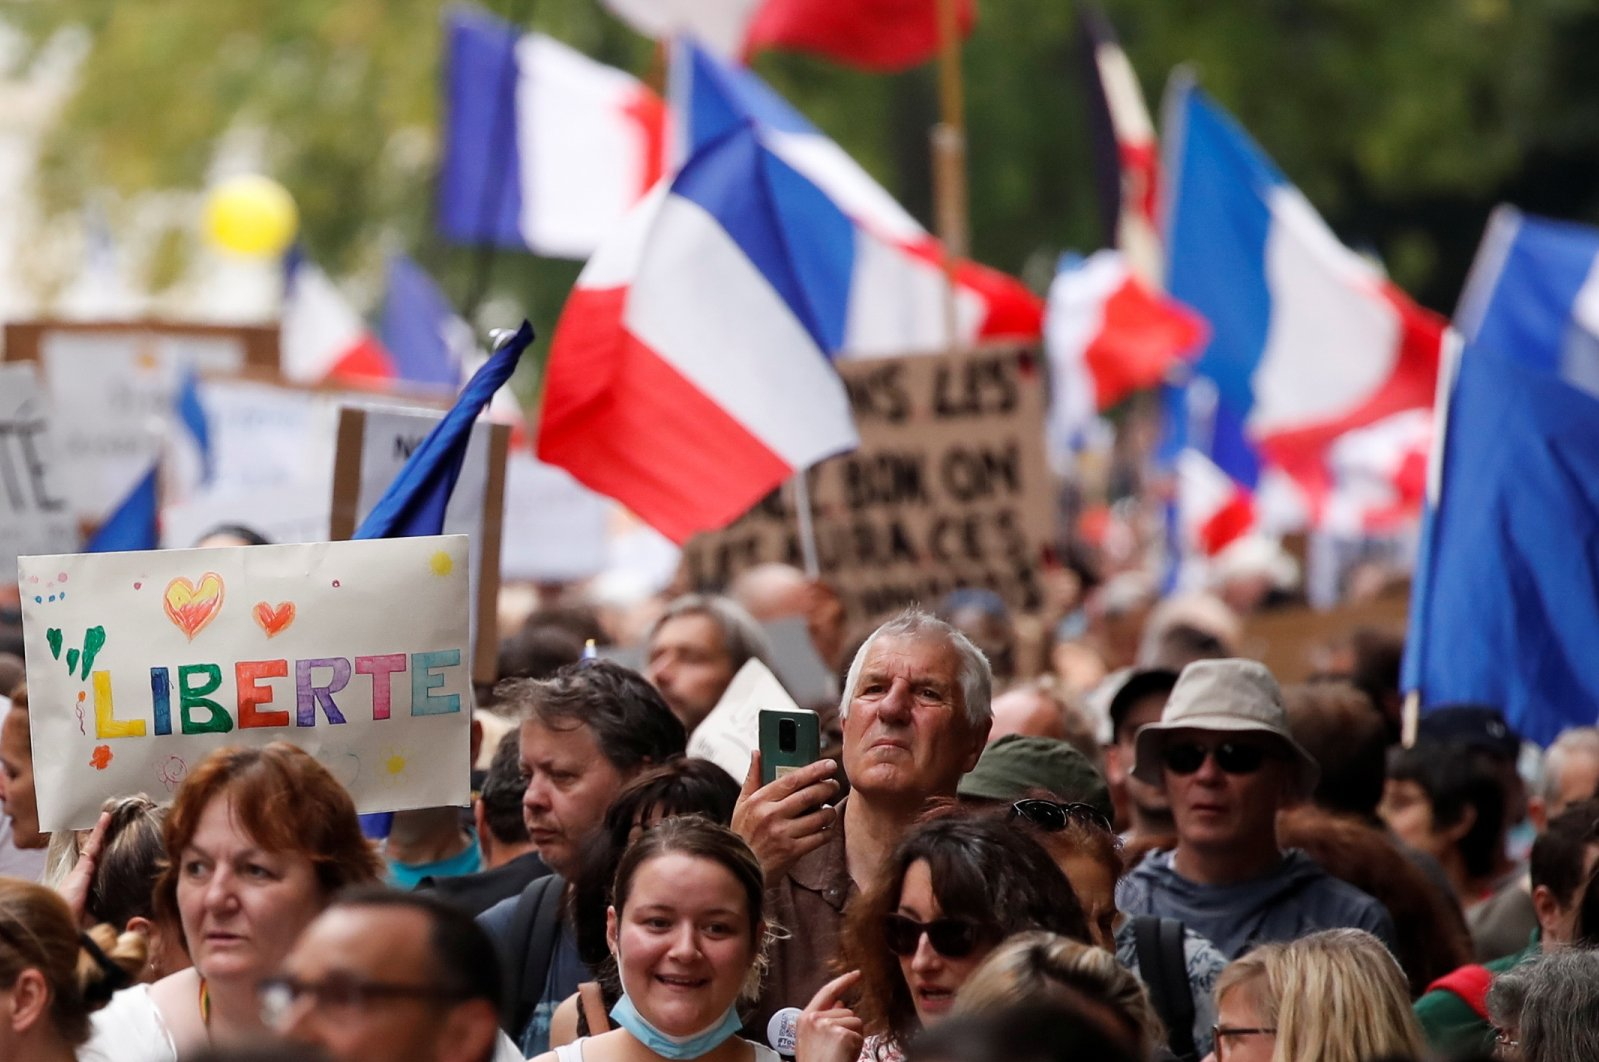 Protesters attend a demonstration against France's restrictions, including a compulsory health pass, to fight the COVID-19 outbreak, in Paris, France, Aug. 21, 2021. (Reuters Photo)